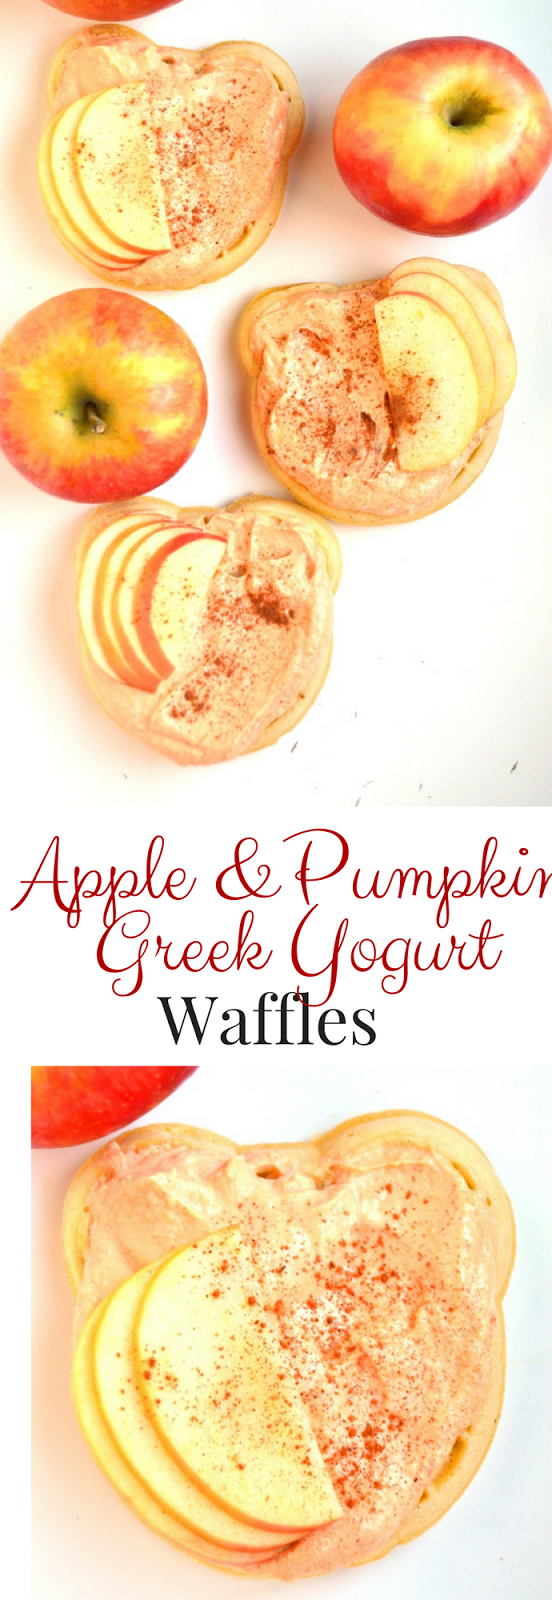 Apple and Pumpkin Greek Yogurt Waffles take 5 minutes to make and feature a mix of pumpkin spiced vanilla Greek yogurt and fresh sliced apples on top of crispy waffles! www.nutritionistreviews.com